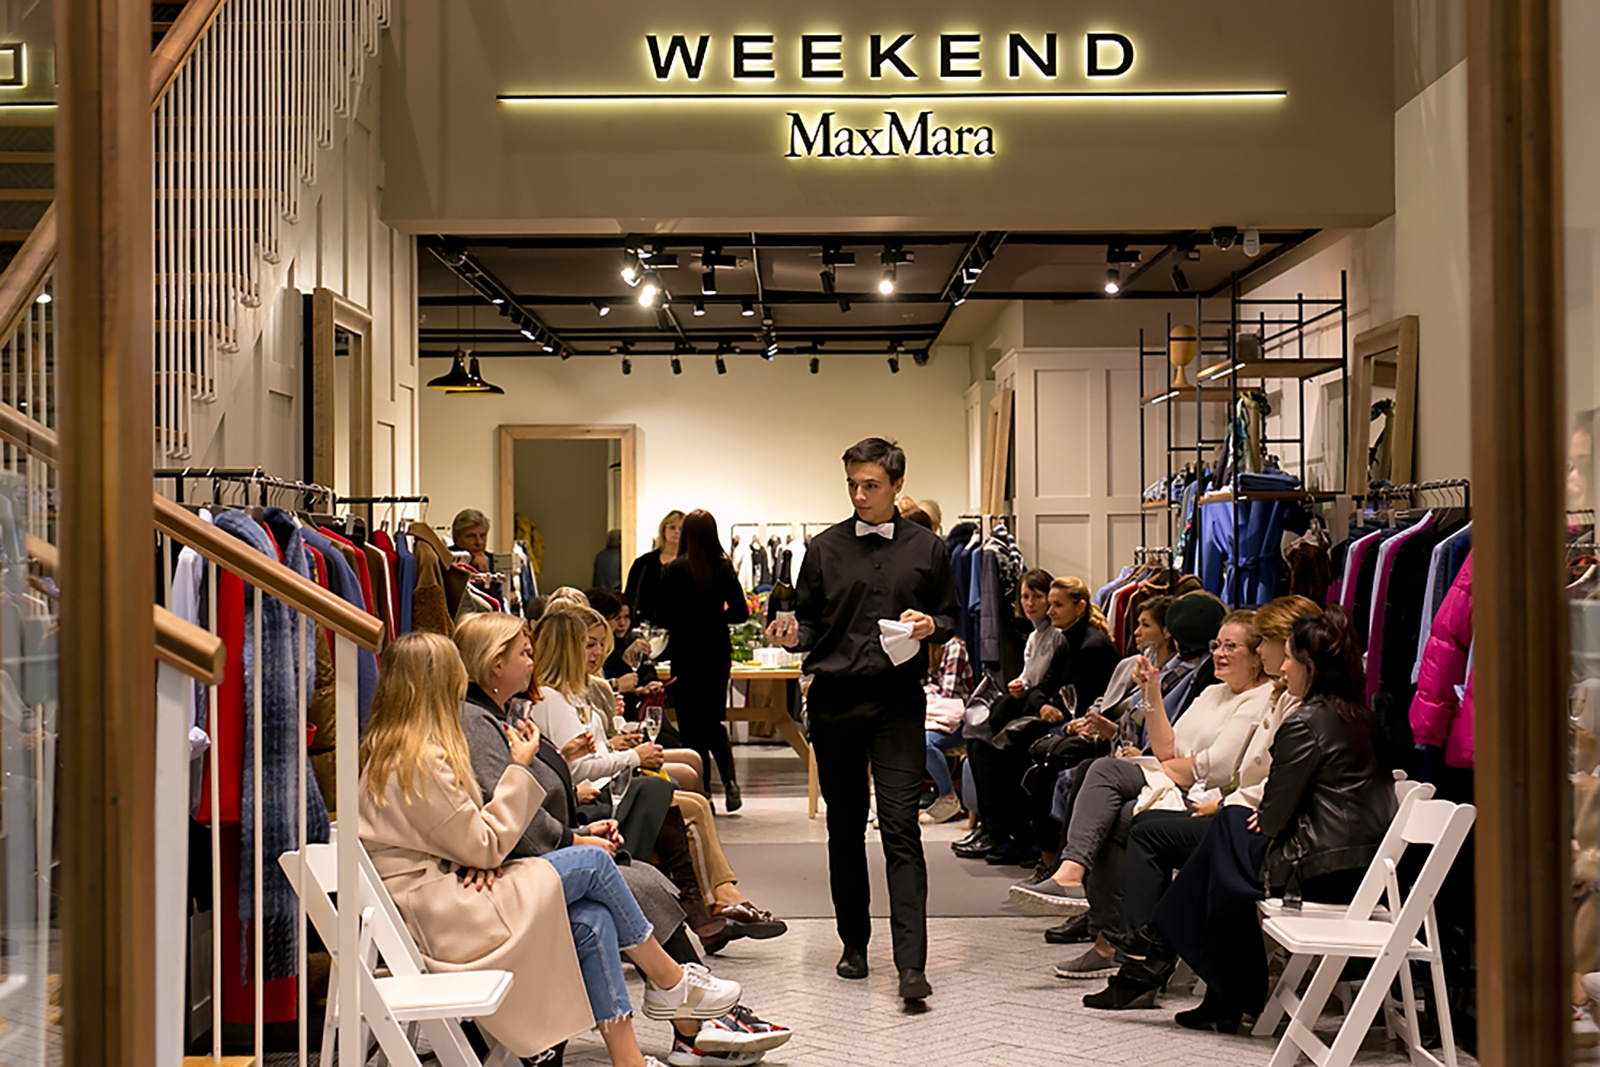 Weekend MaxMara: транк-шоу в Петербурге